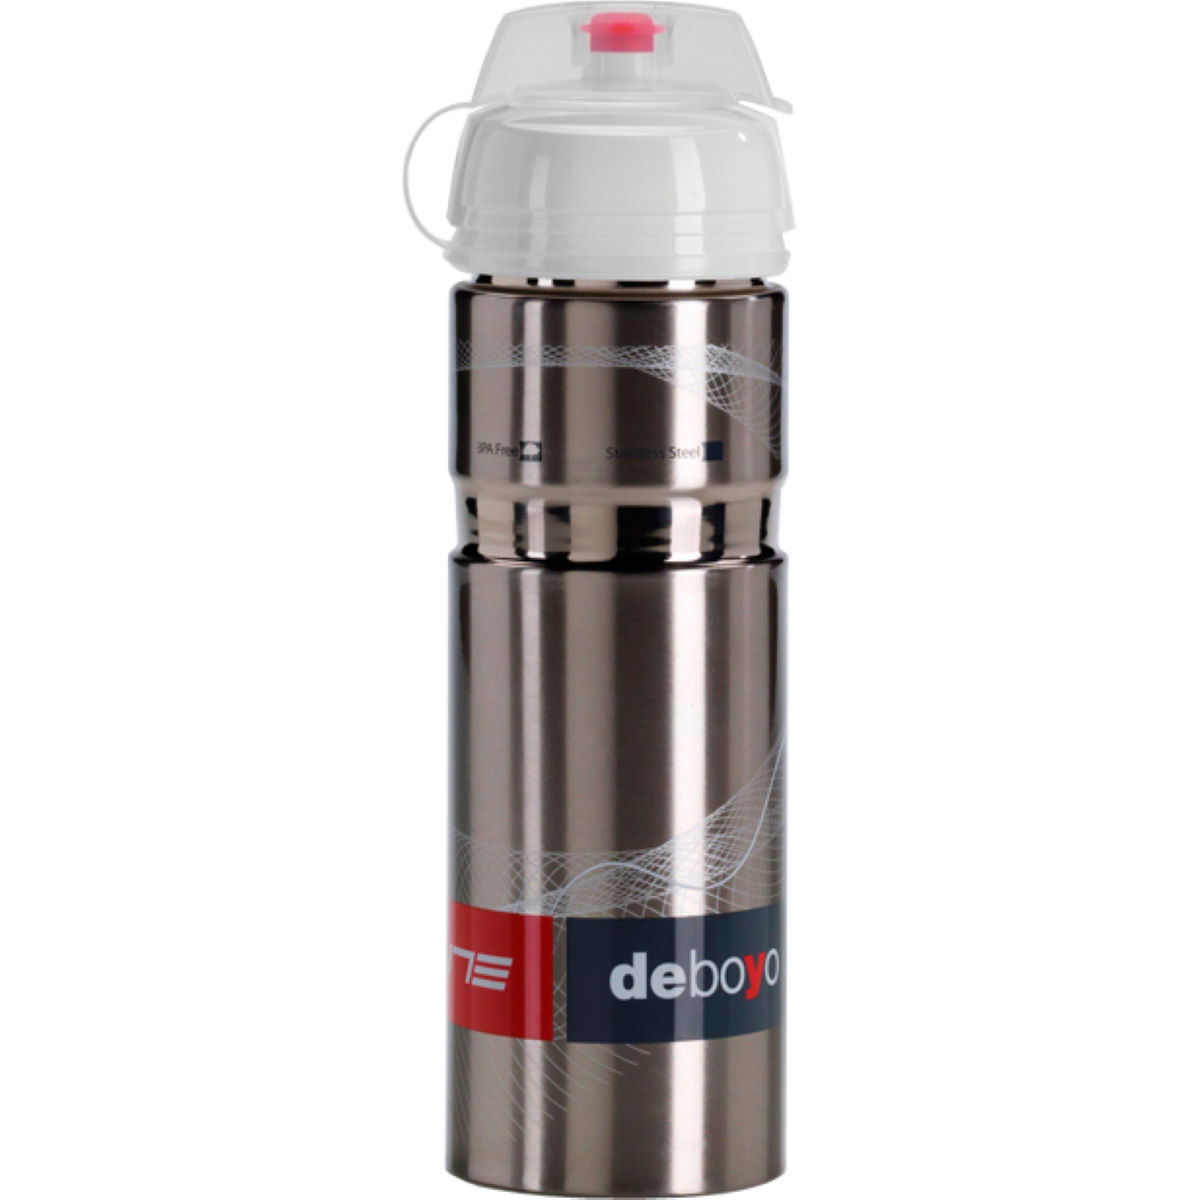 Elite Deboyo Stainless Steel Vacuum Bottle